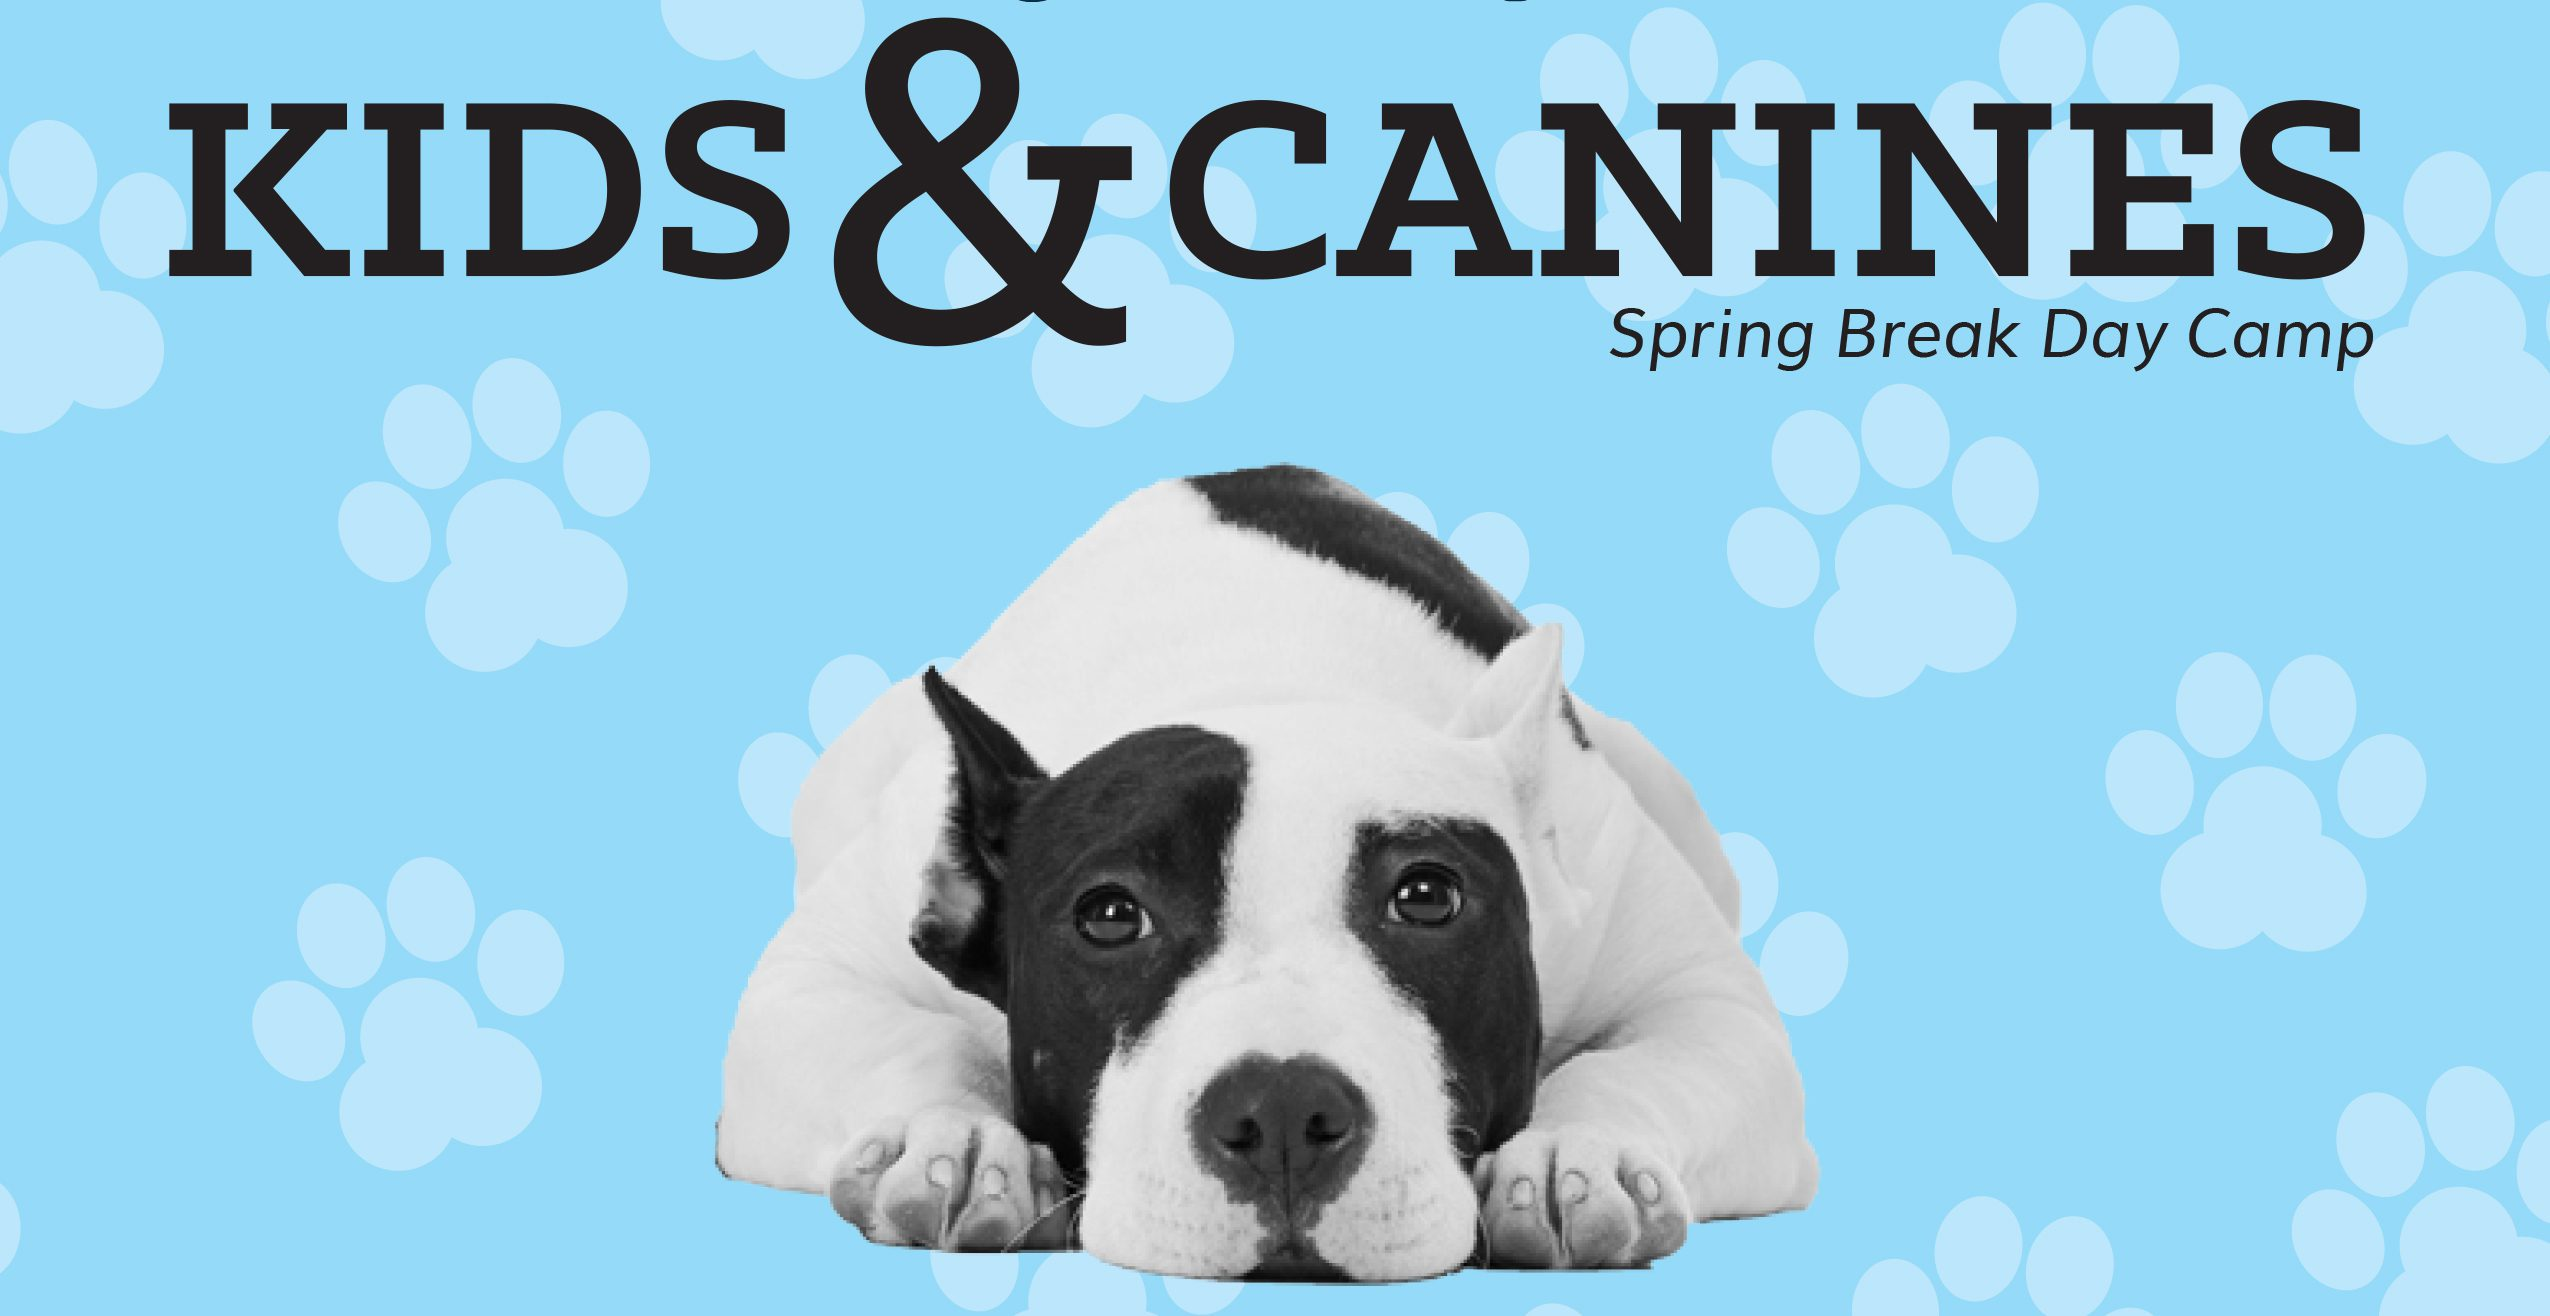 Dog-Harmony announces Kids & Canines: A Spring Break Camp